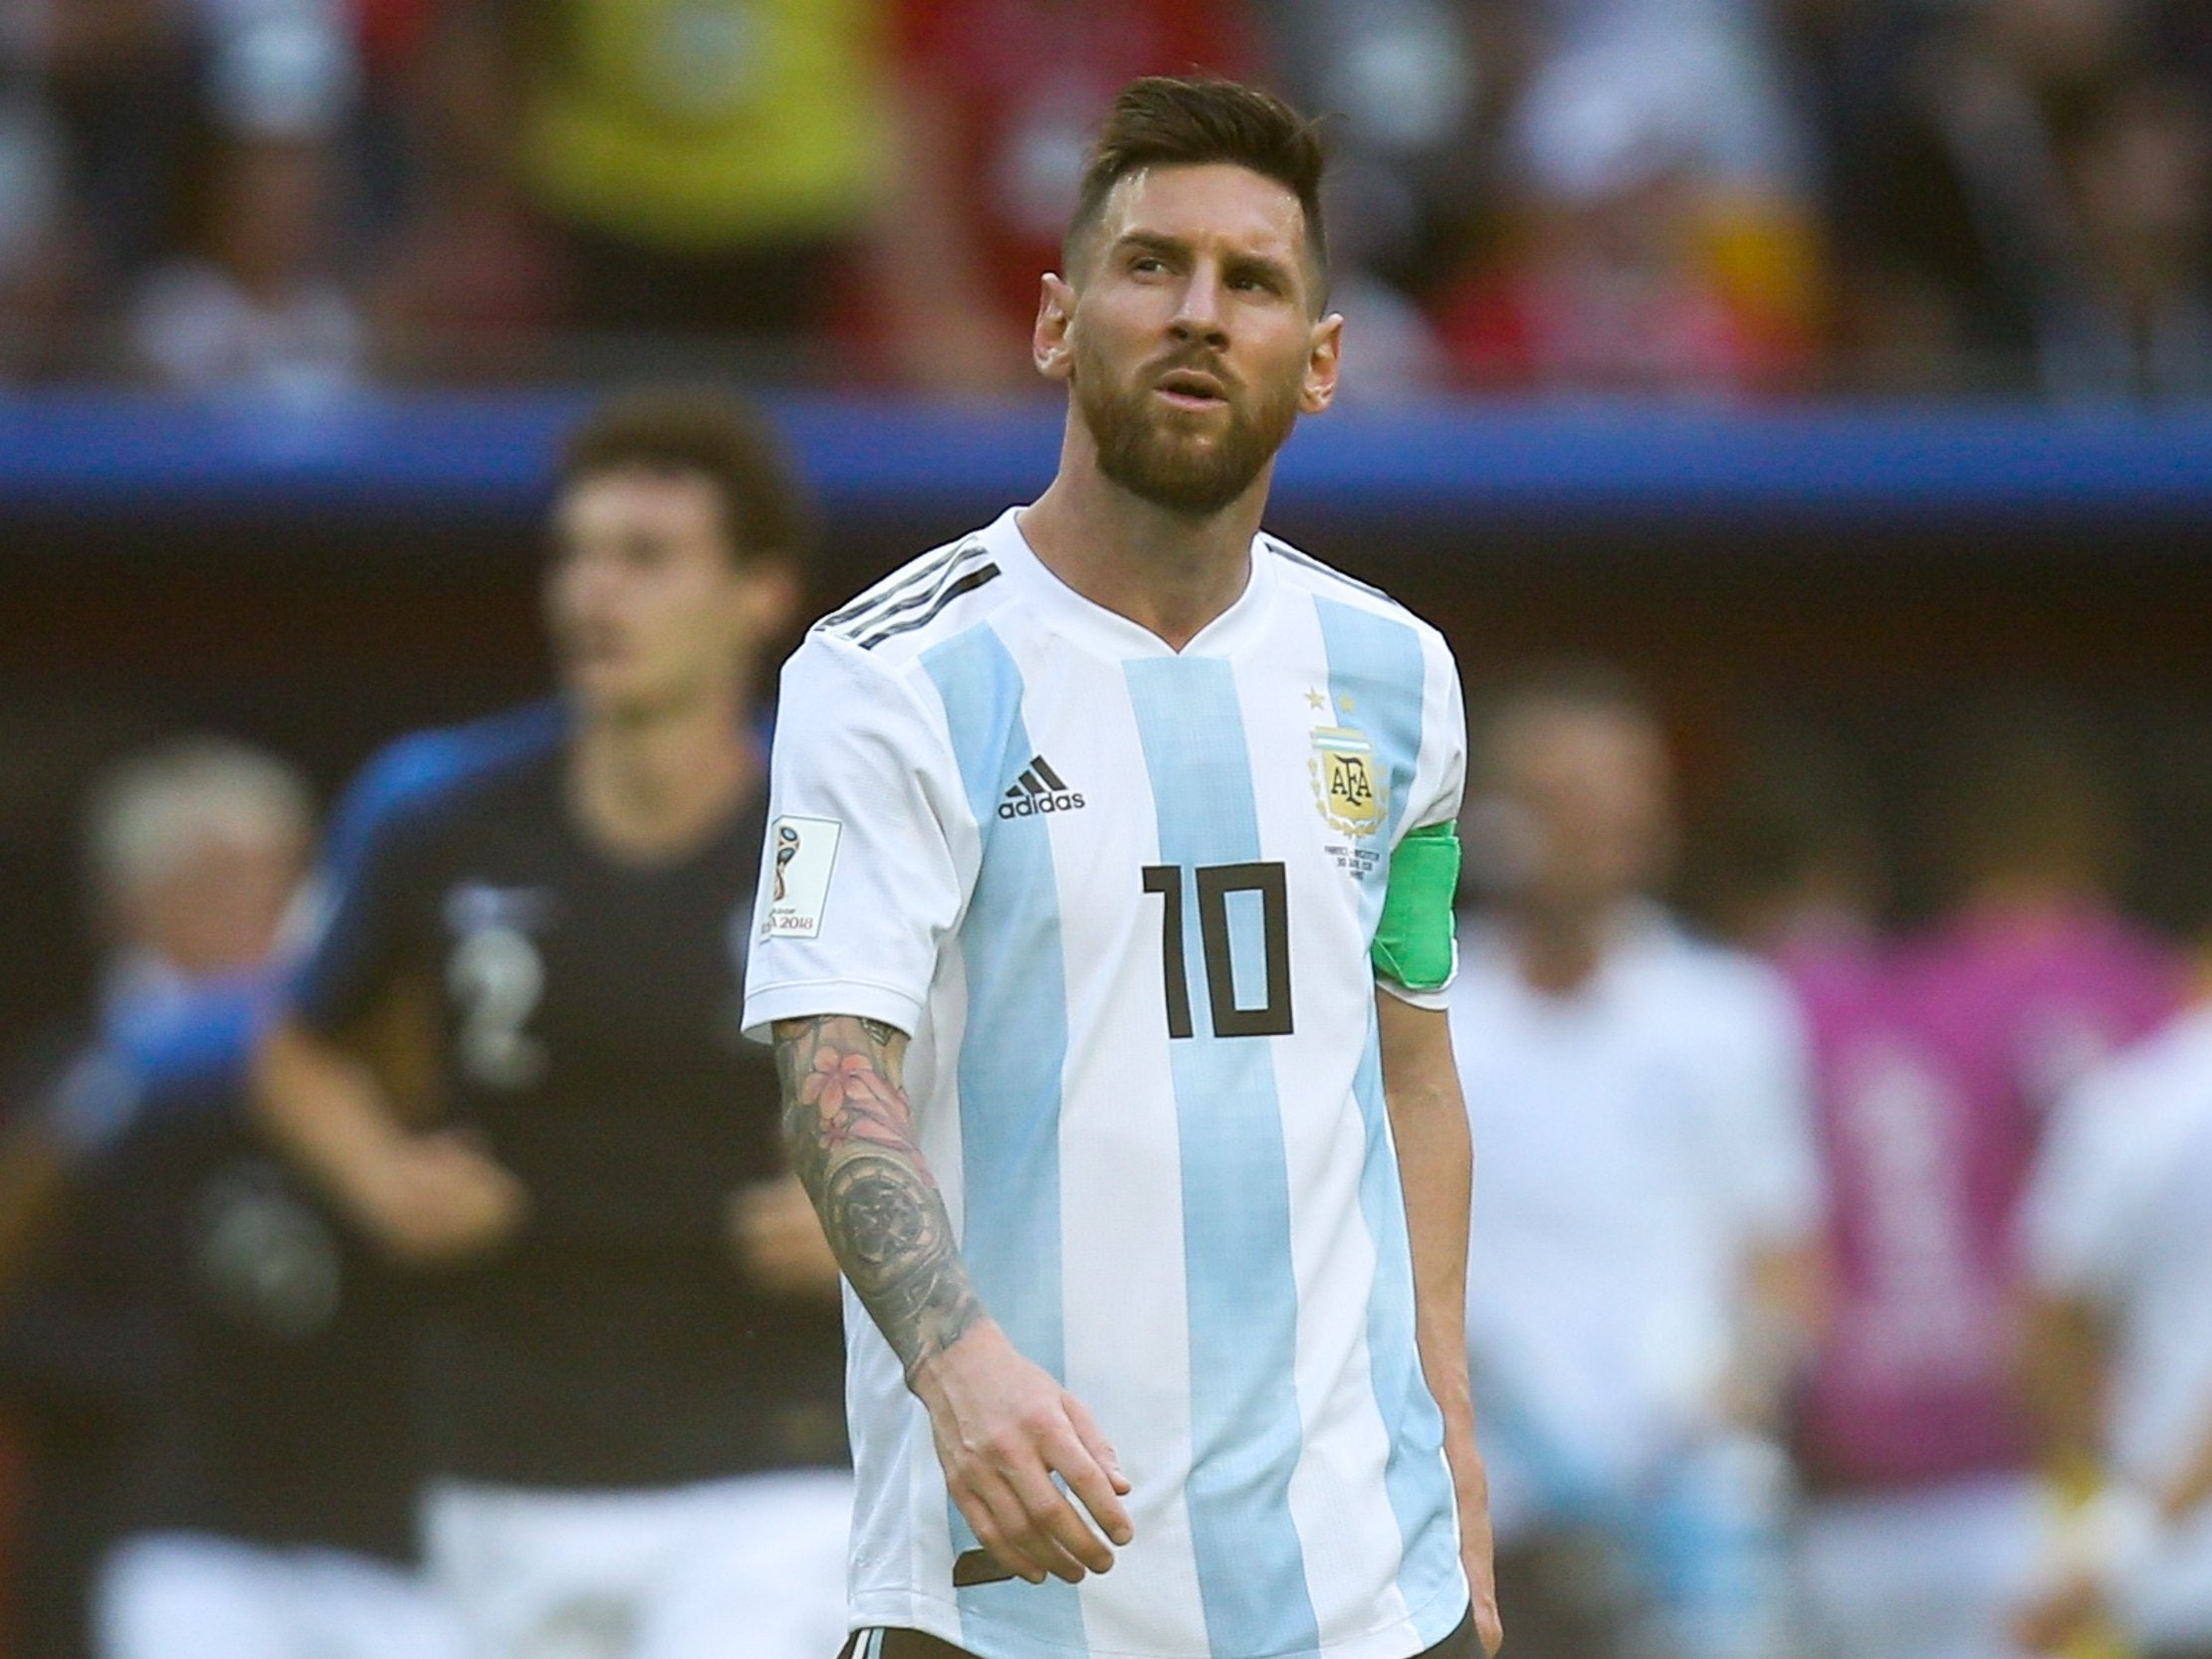 751f9fb7 Why Argentina's road to World Cup failure is long, complicated and paved  with greed and corruption | The Independent